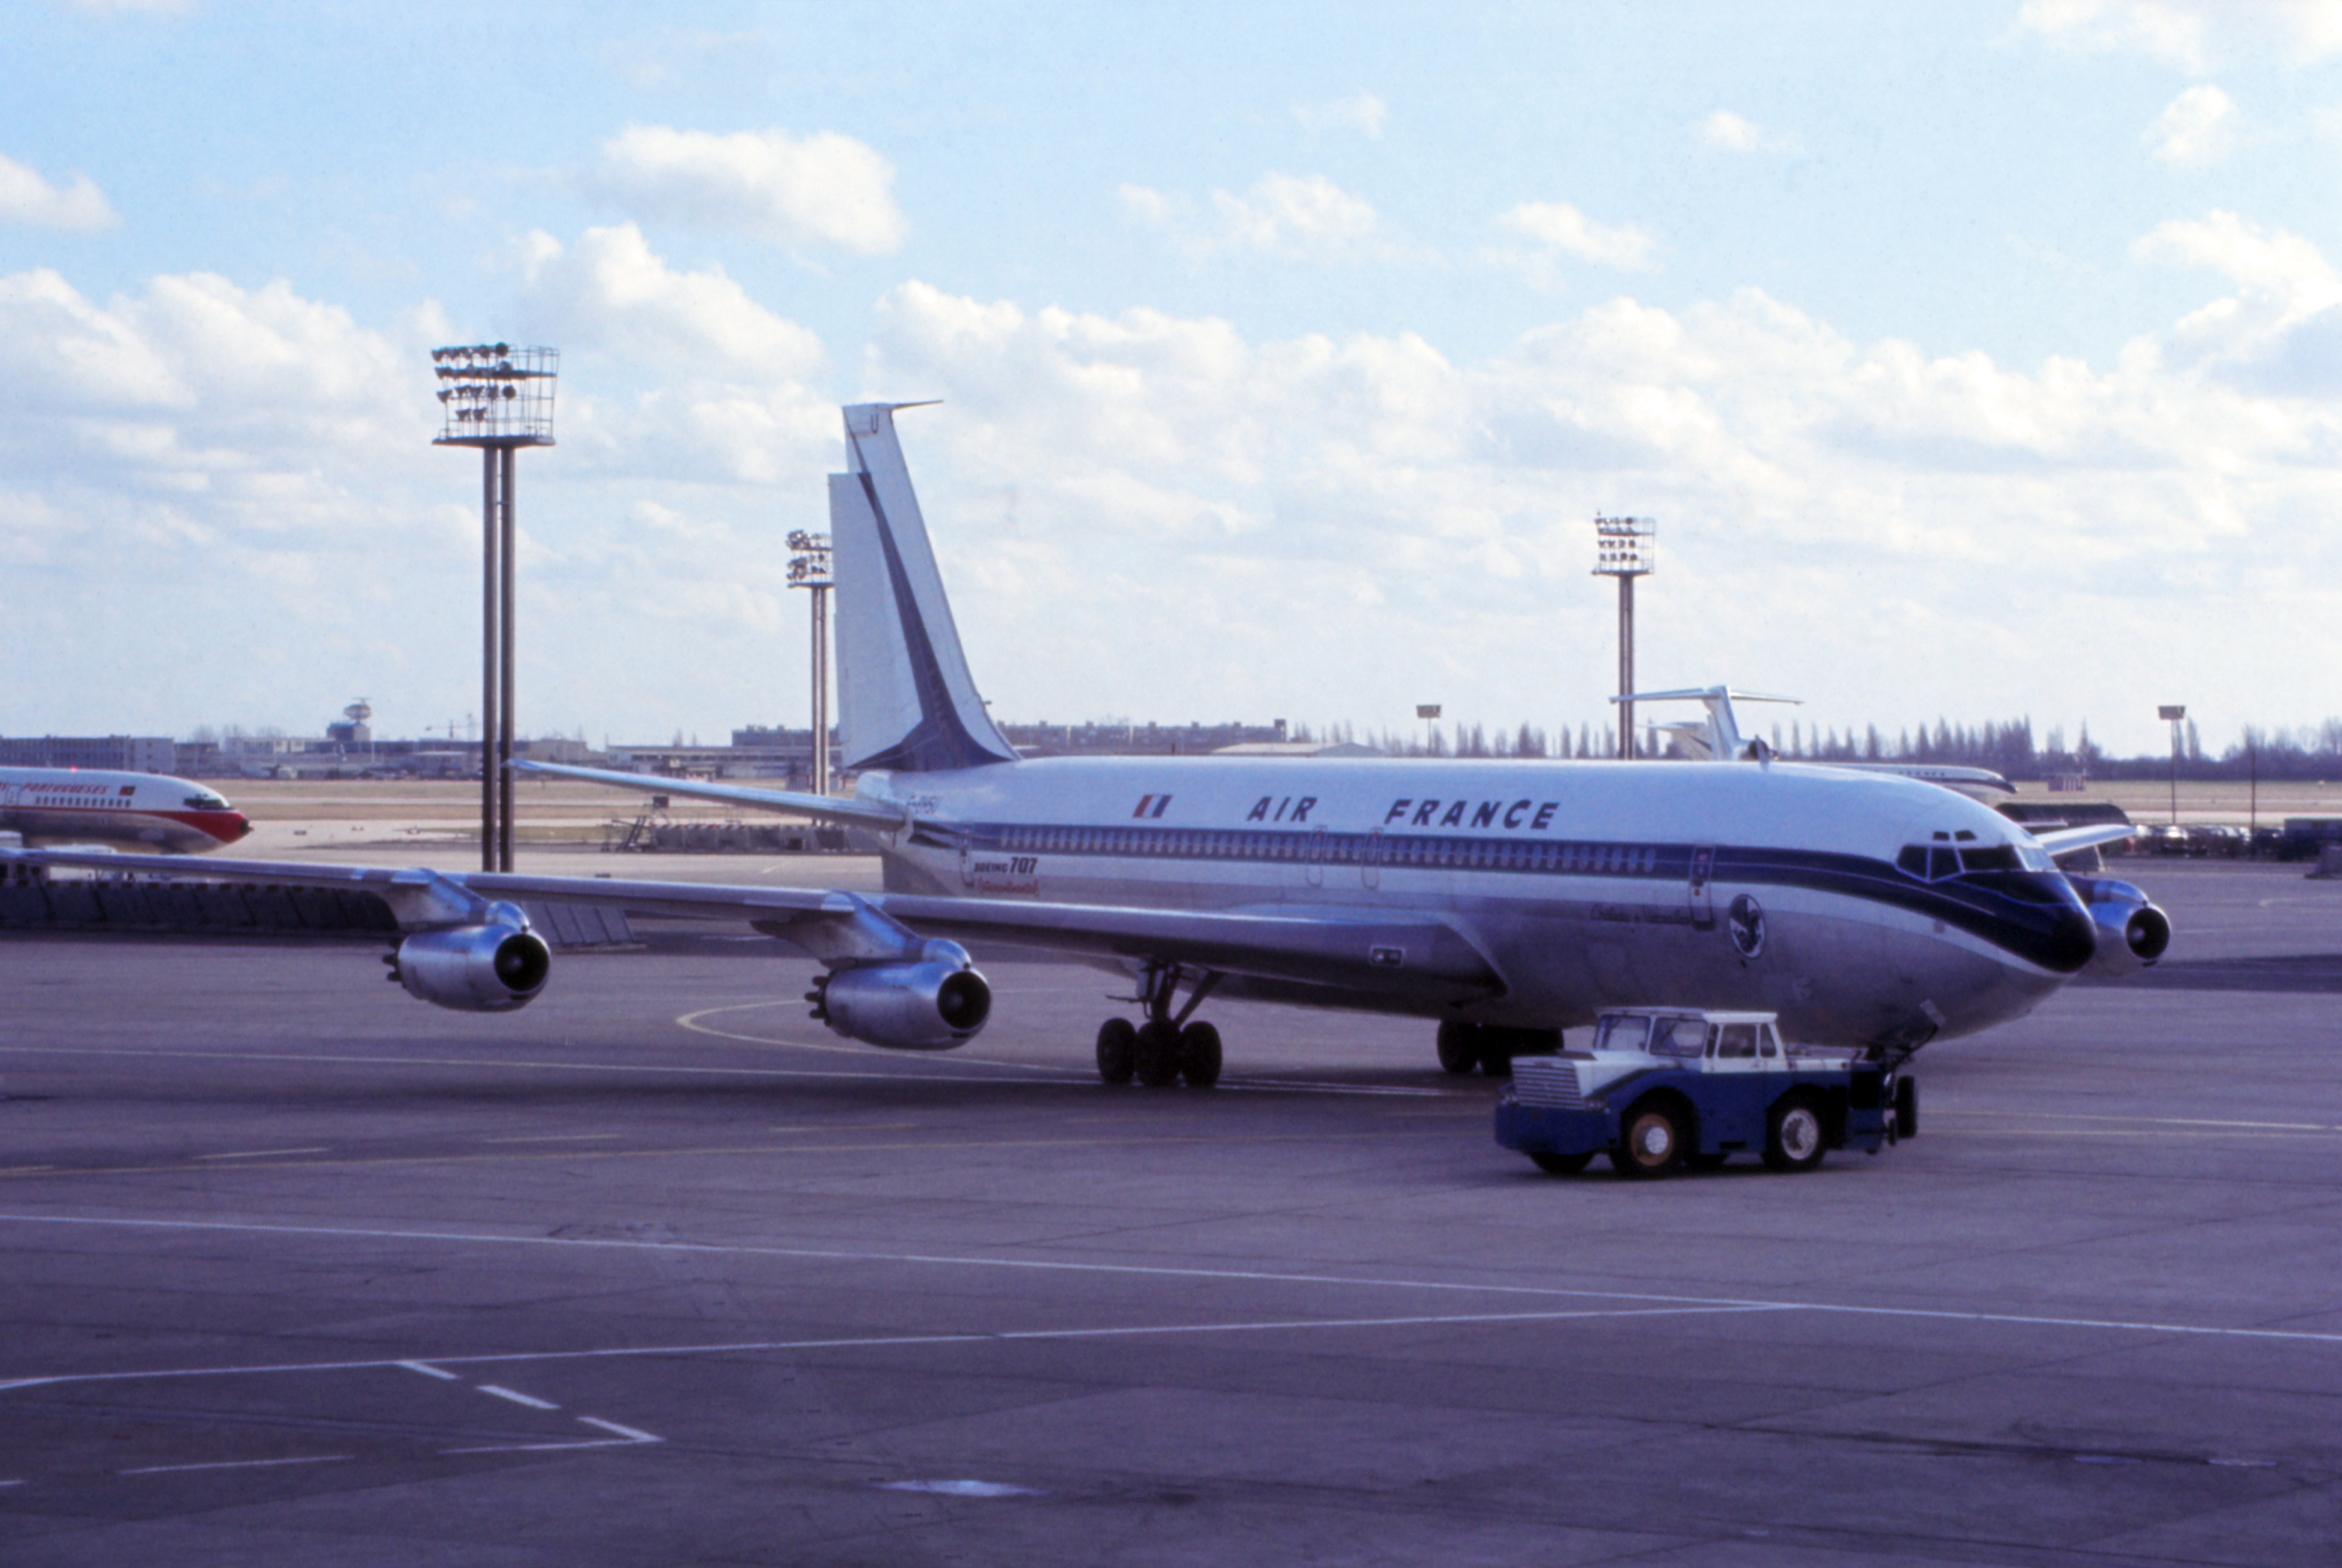 1956 air france ordered its first boeing